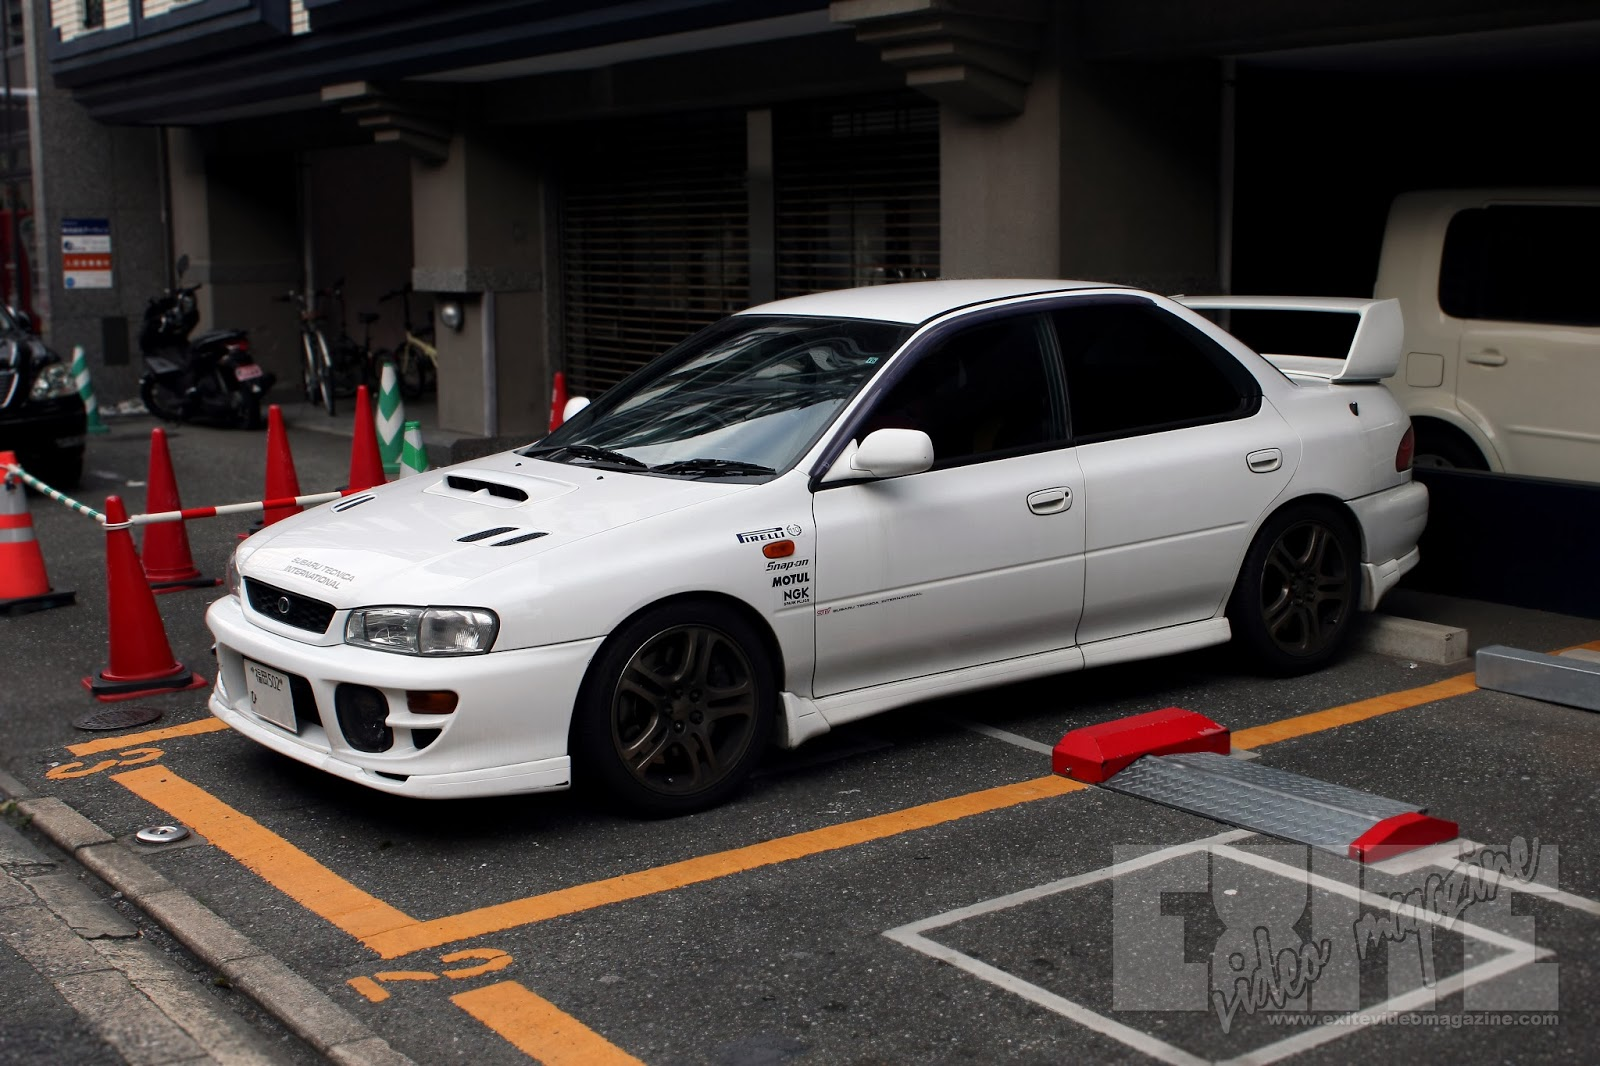 Car With Jdm Stickers Wallpaper White Gc8 In Hakata Exite Video Magazine